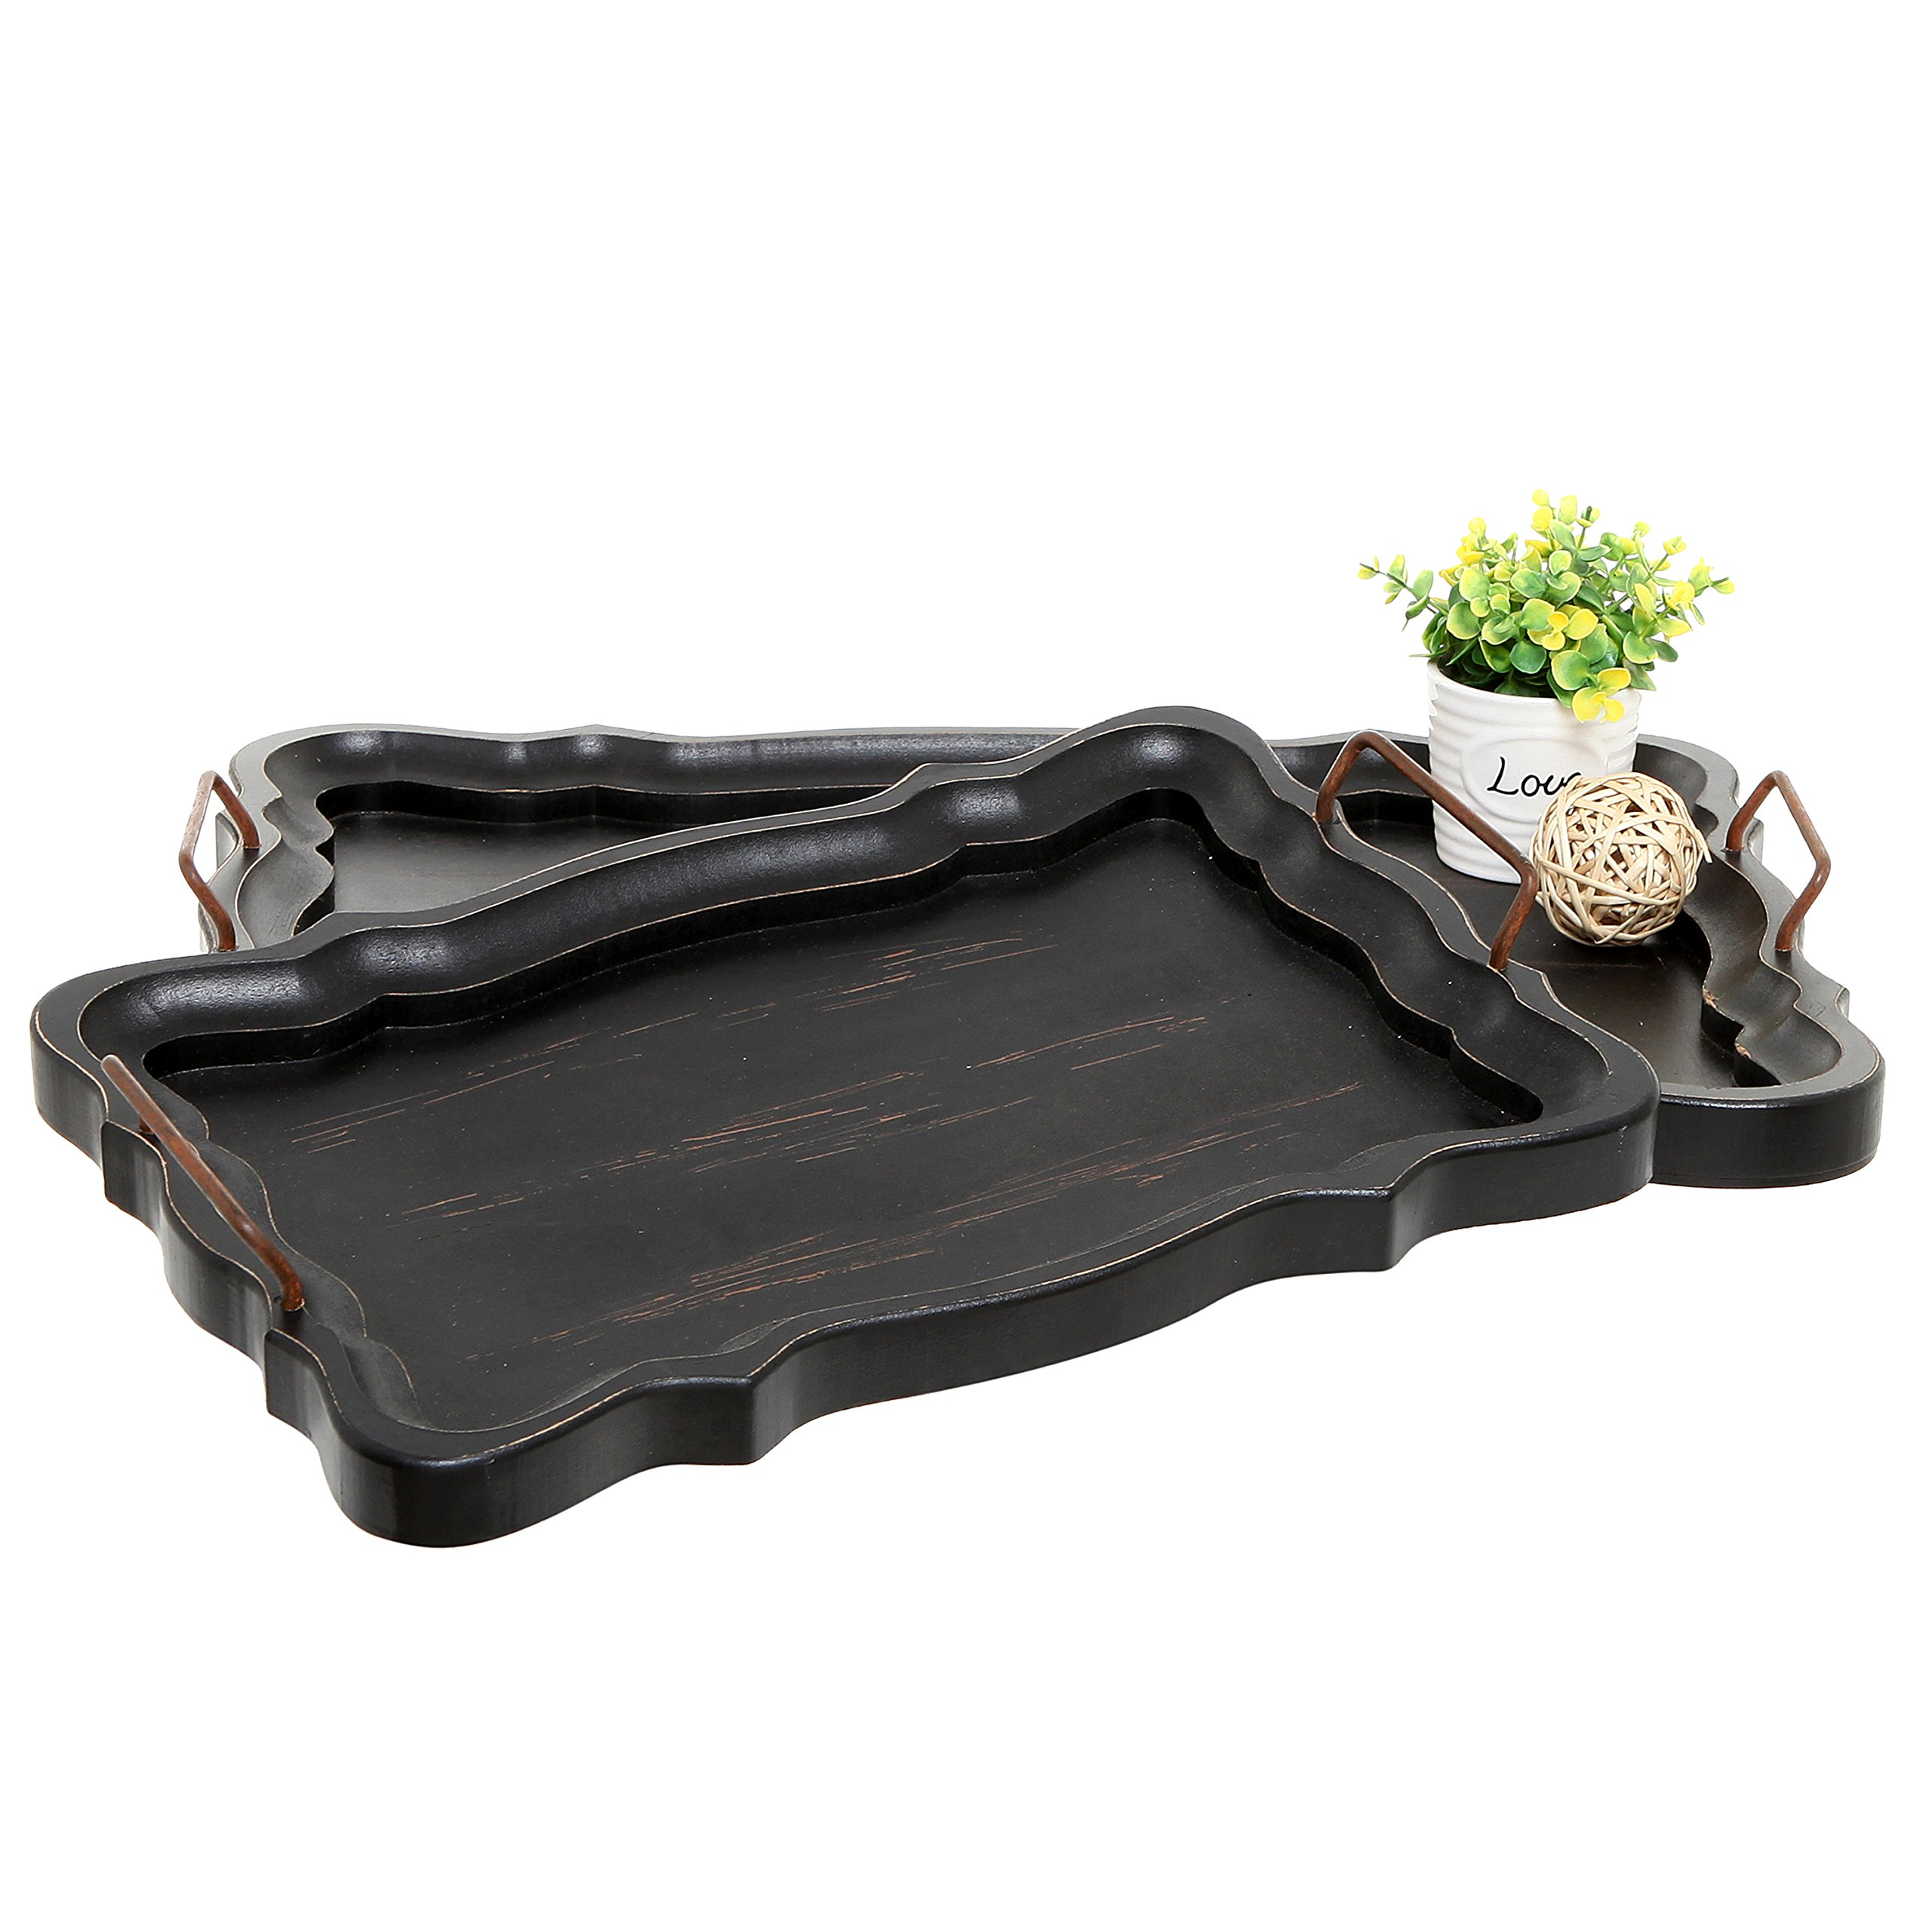 MyGift Set of 2 Rustic Black Brown European Vintage Style Wood Serving Trays/Platters with Metal Handles by MyGift